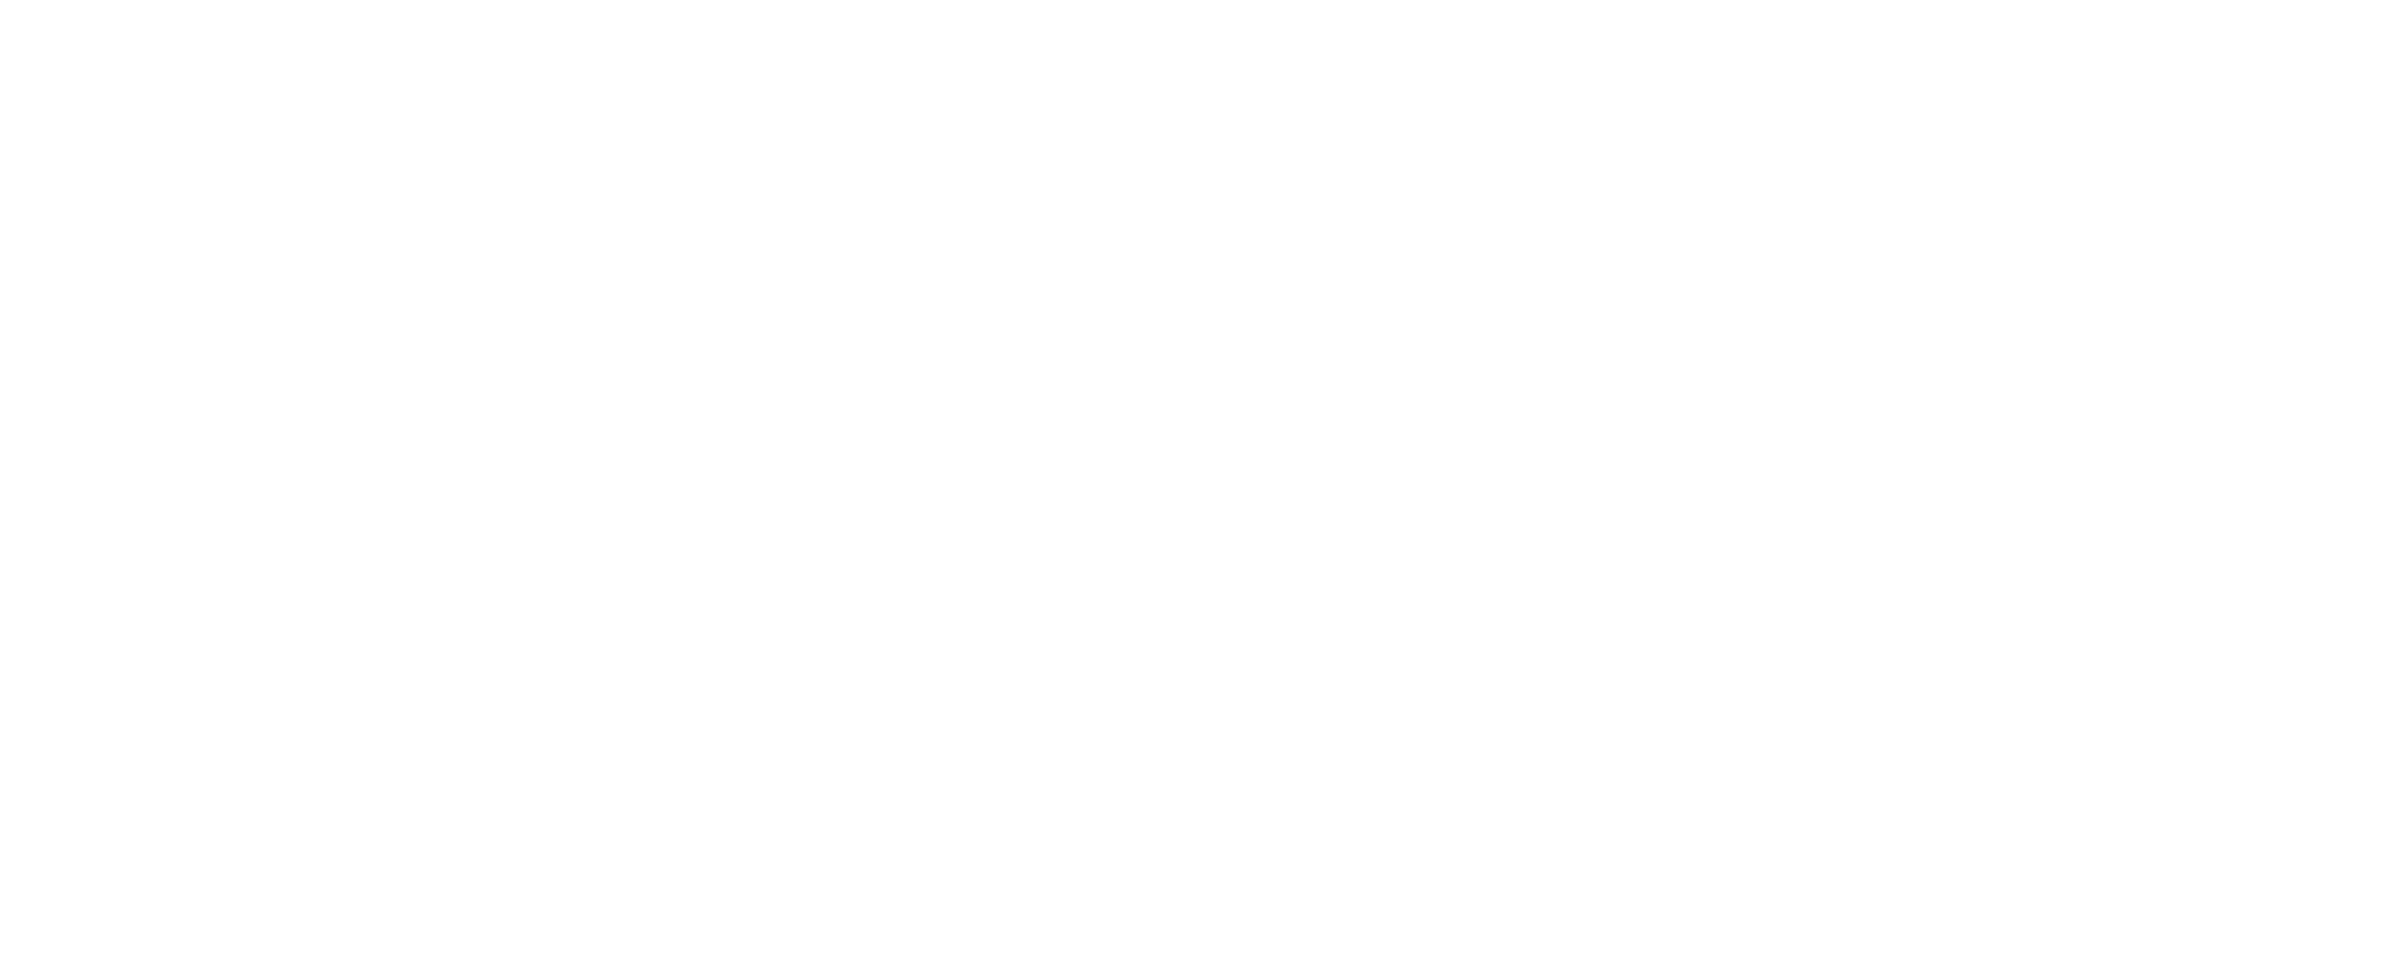 Logo for Lids Access Pass, the loyalty program of Lids.